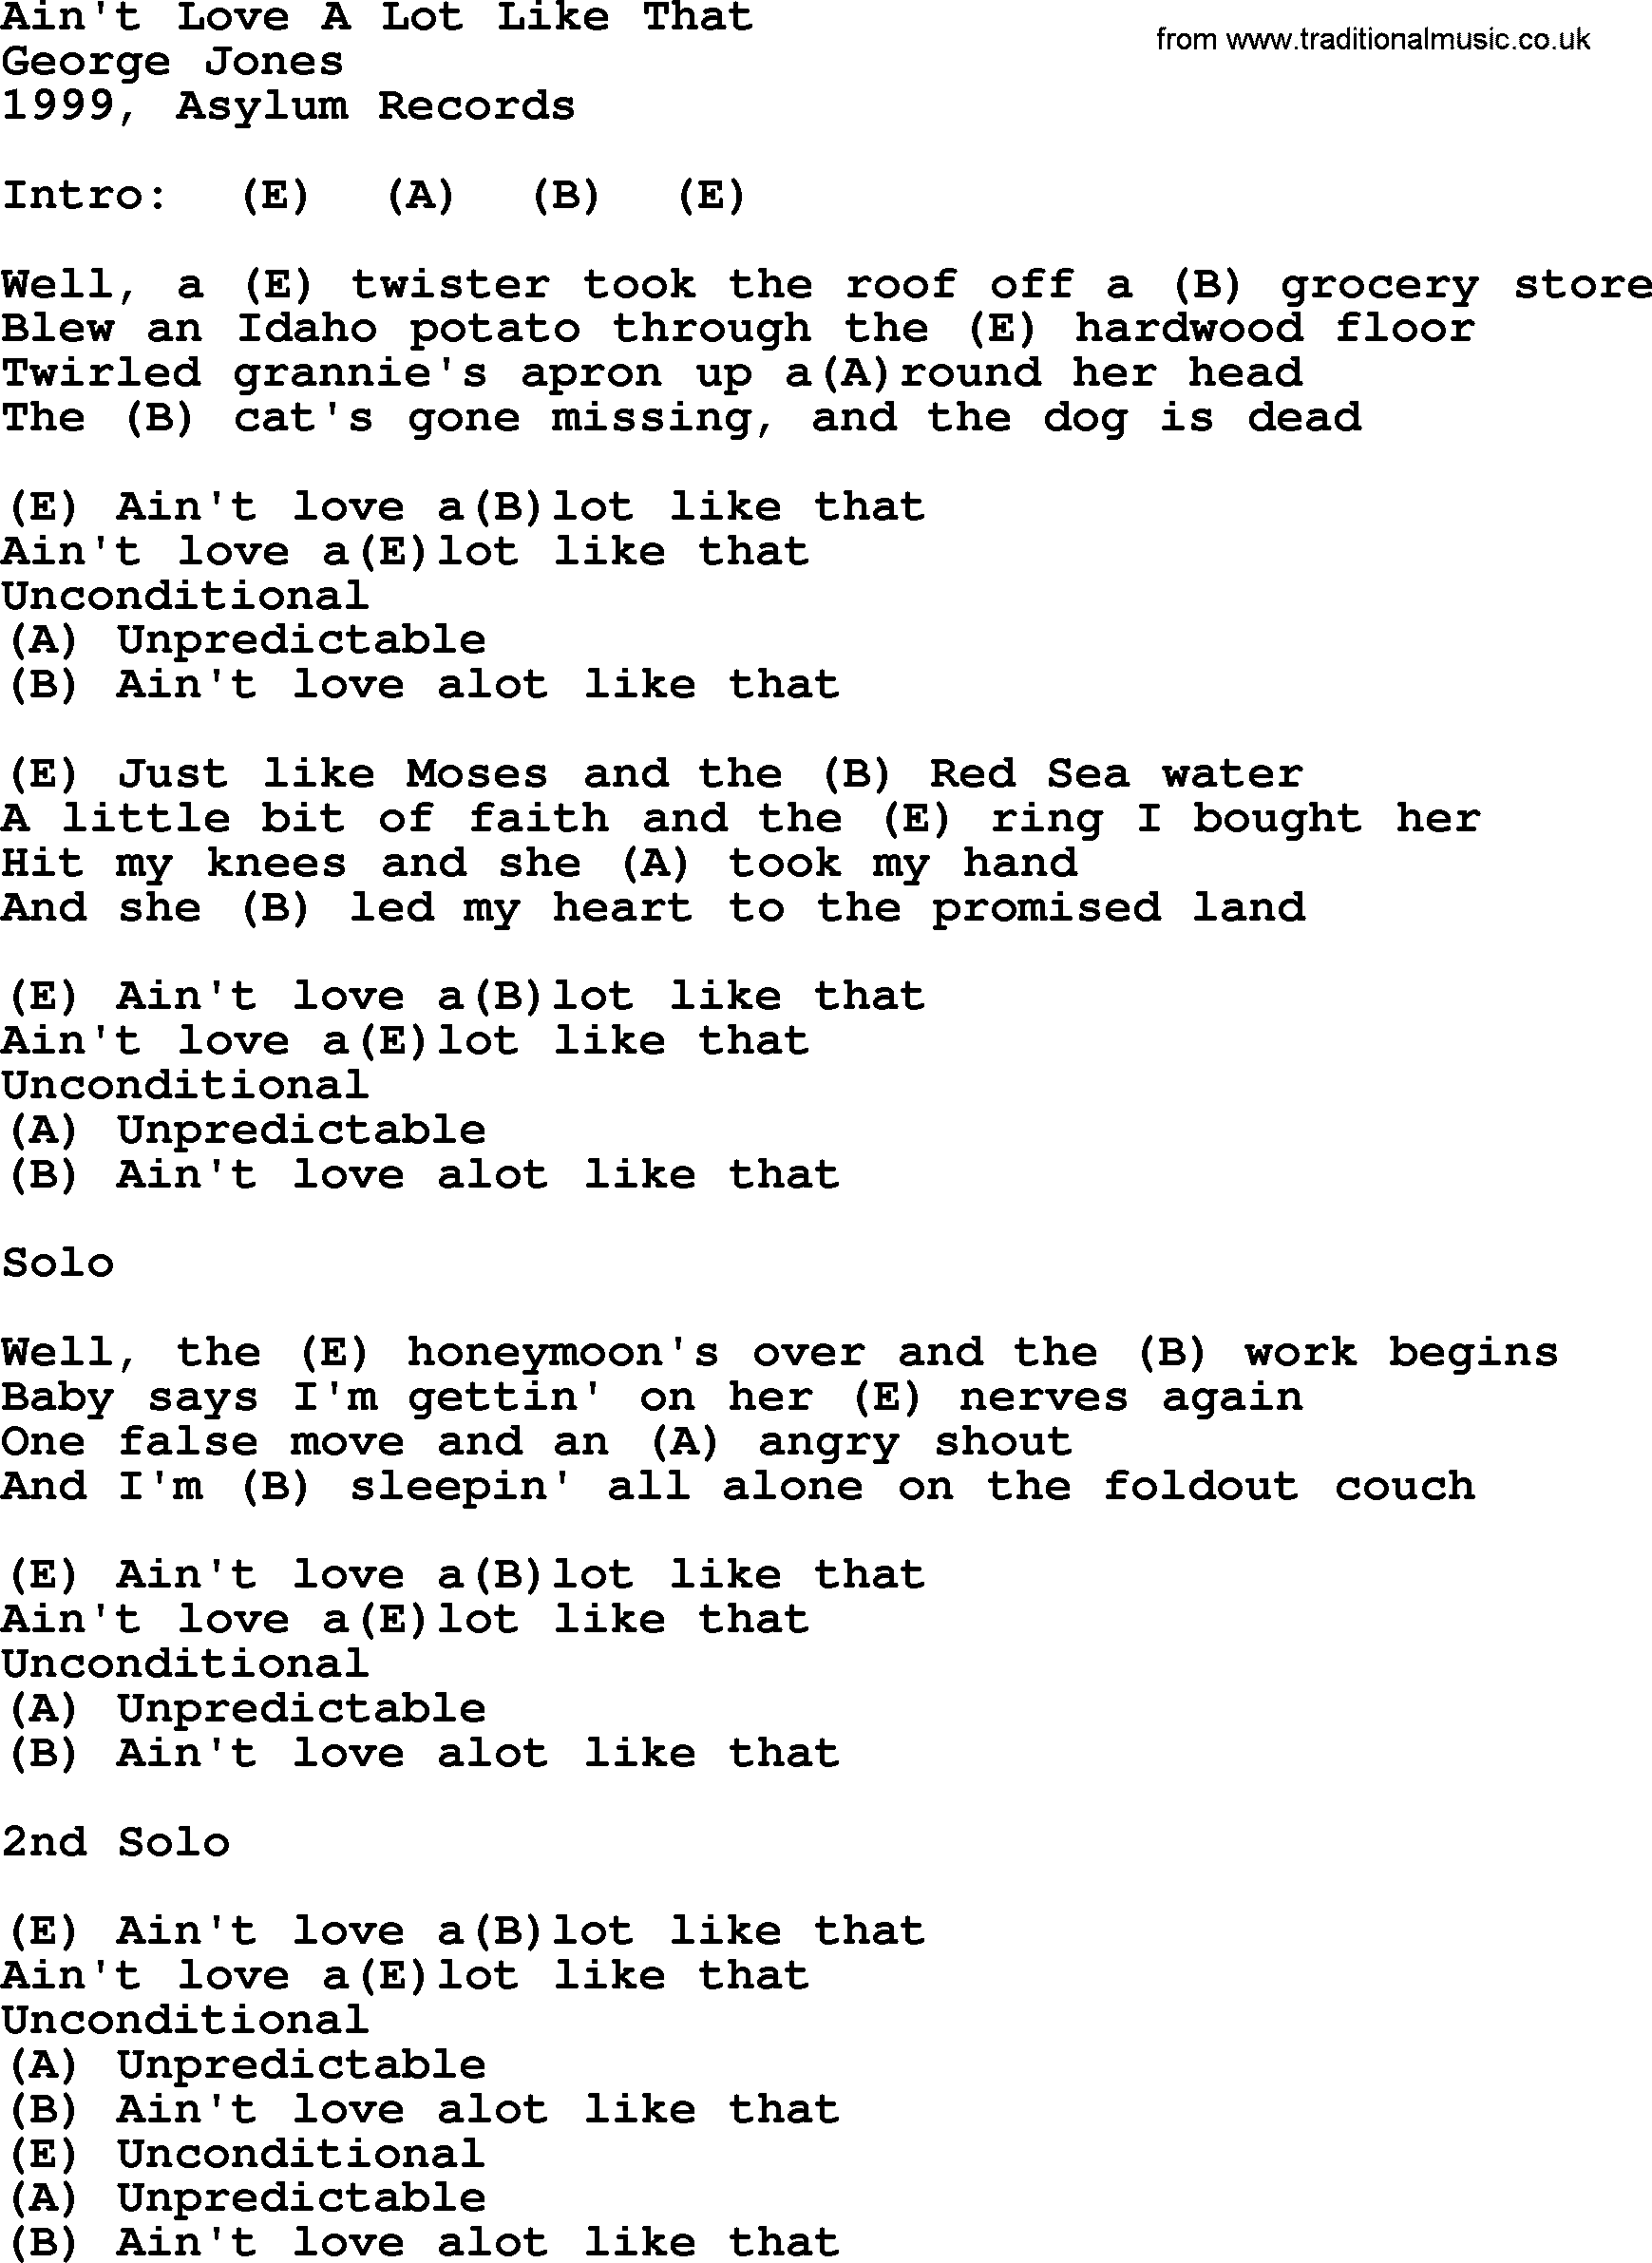 Eli Young Band - A Lot Like Love Lyrics - lyricsera.com